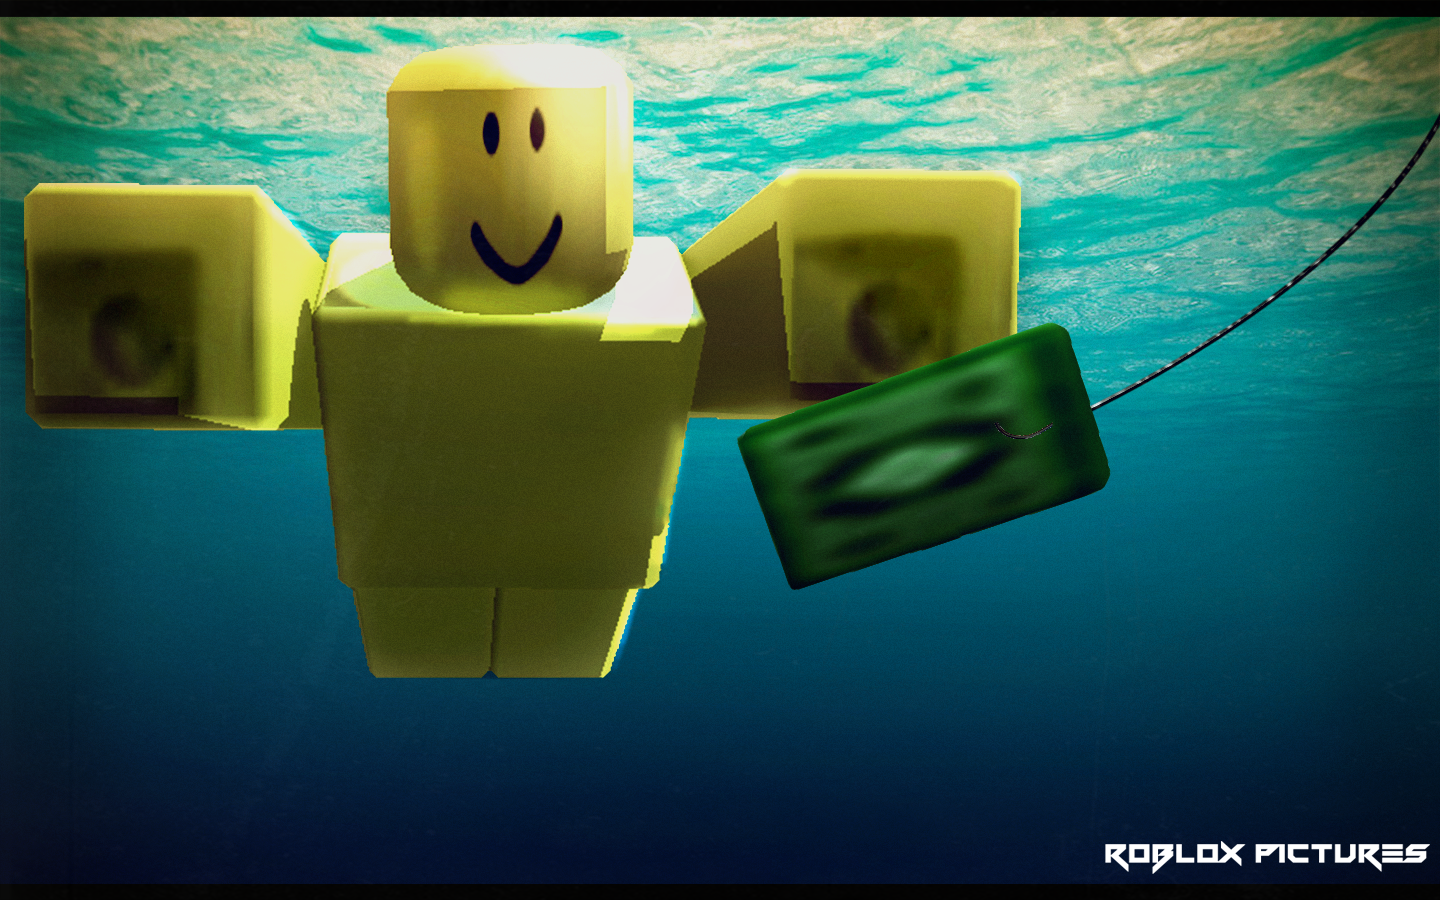 Fan Art Roblox Background Wallpaper Roblox Album Fan Art By Putinpot On Deviantart